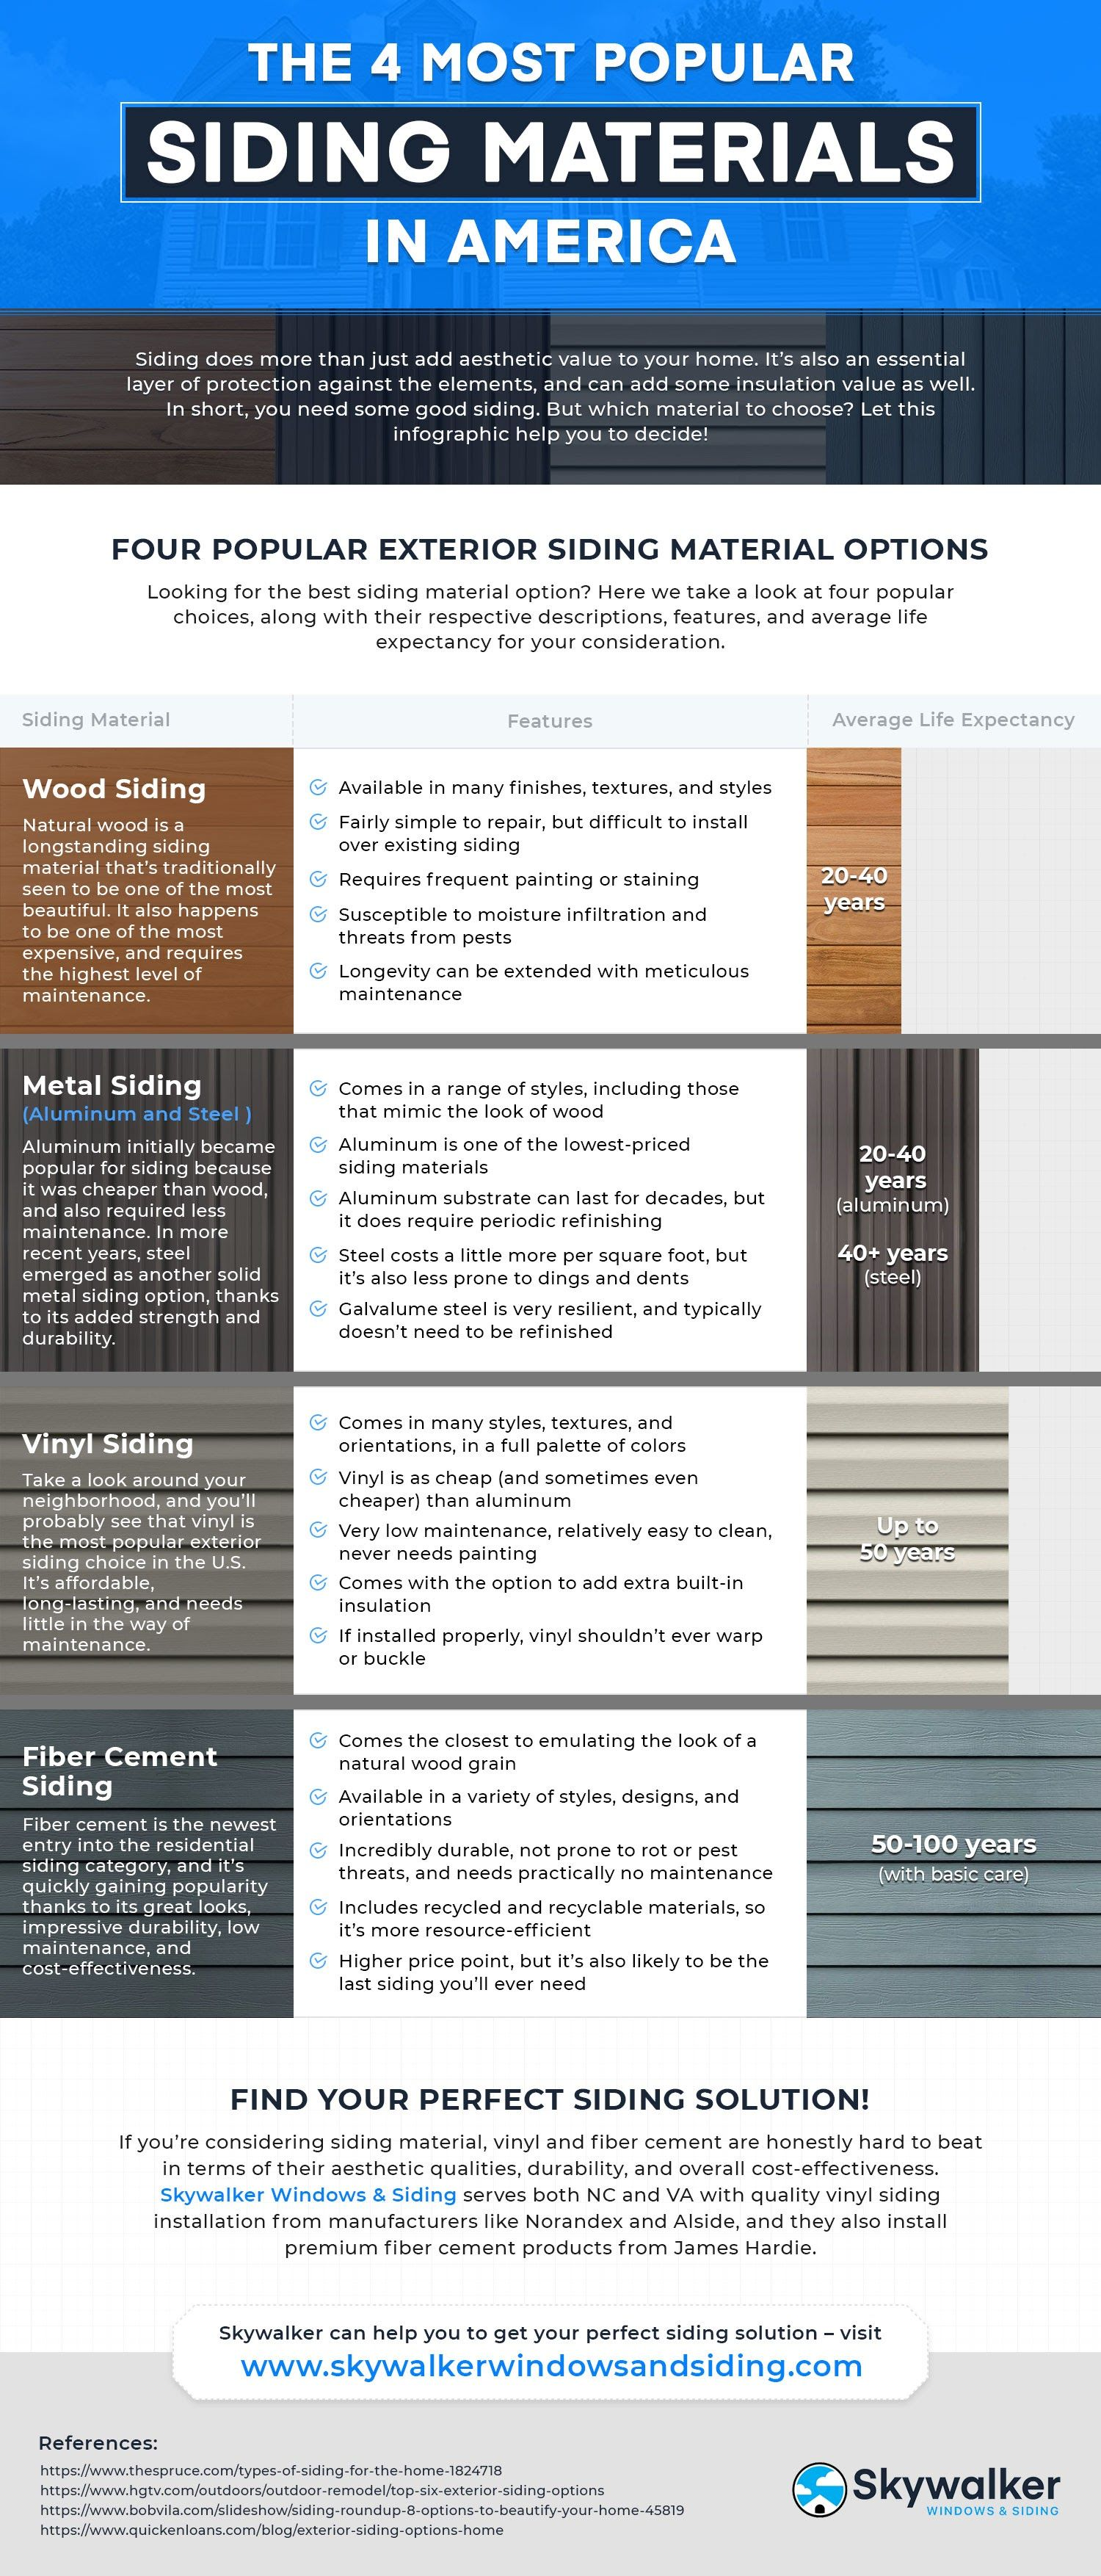 The 4 Most Popular Siding Materials in America #infographic #Home improvement #types of siding #siding #sidin… | Siding, Siding materials, Exterior siding materials